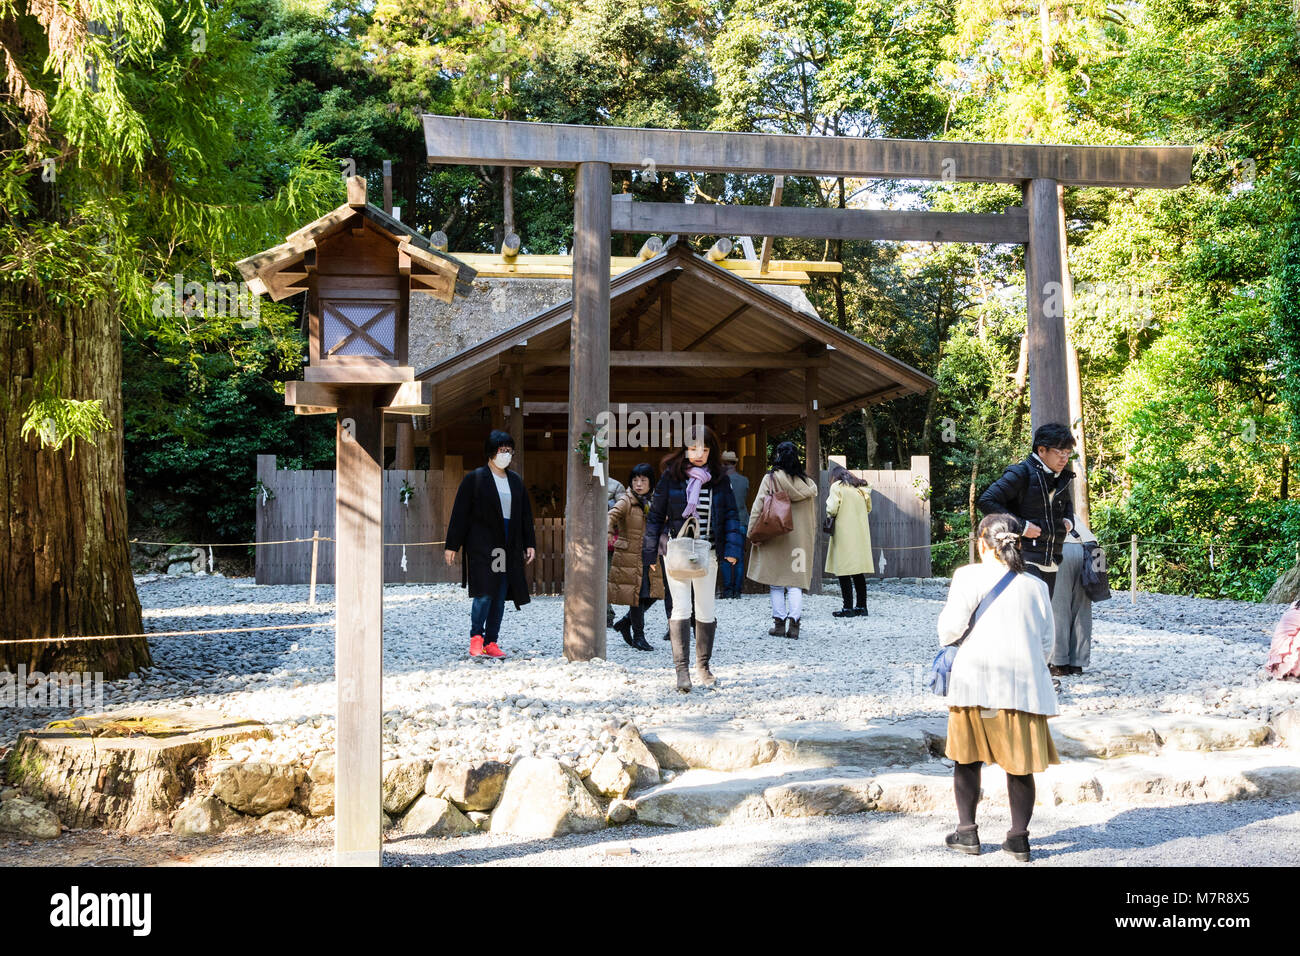 Japan, Ise, Ise-jingu Geku, Outer Shrine. People praying at small wooden shrine with torii gate. - Stock Image